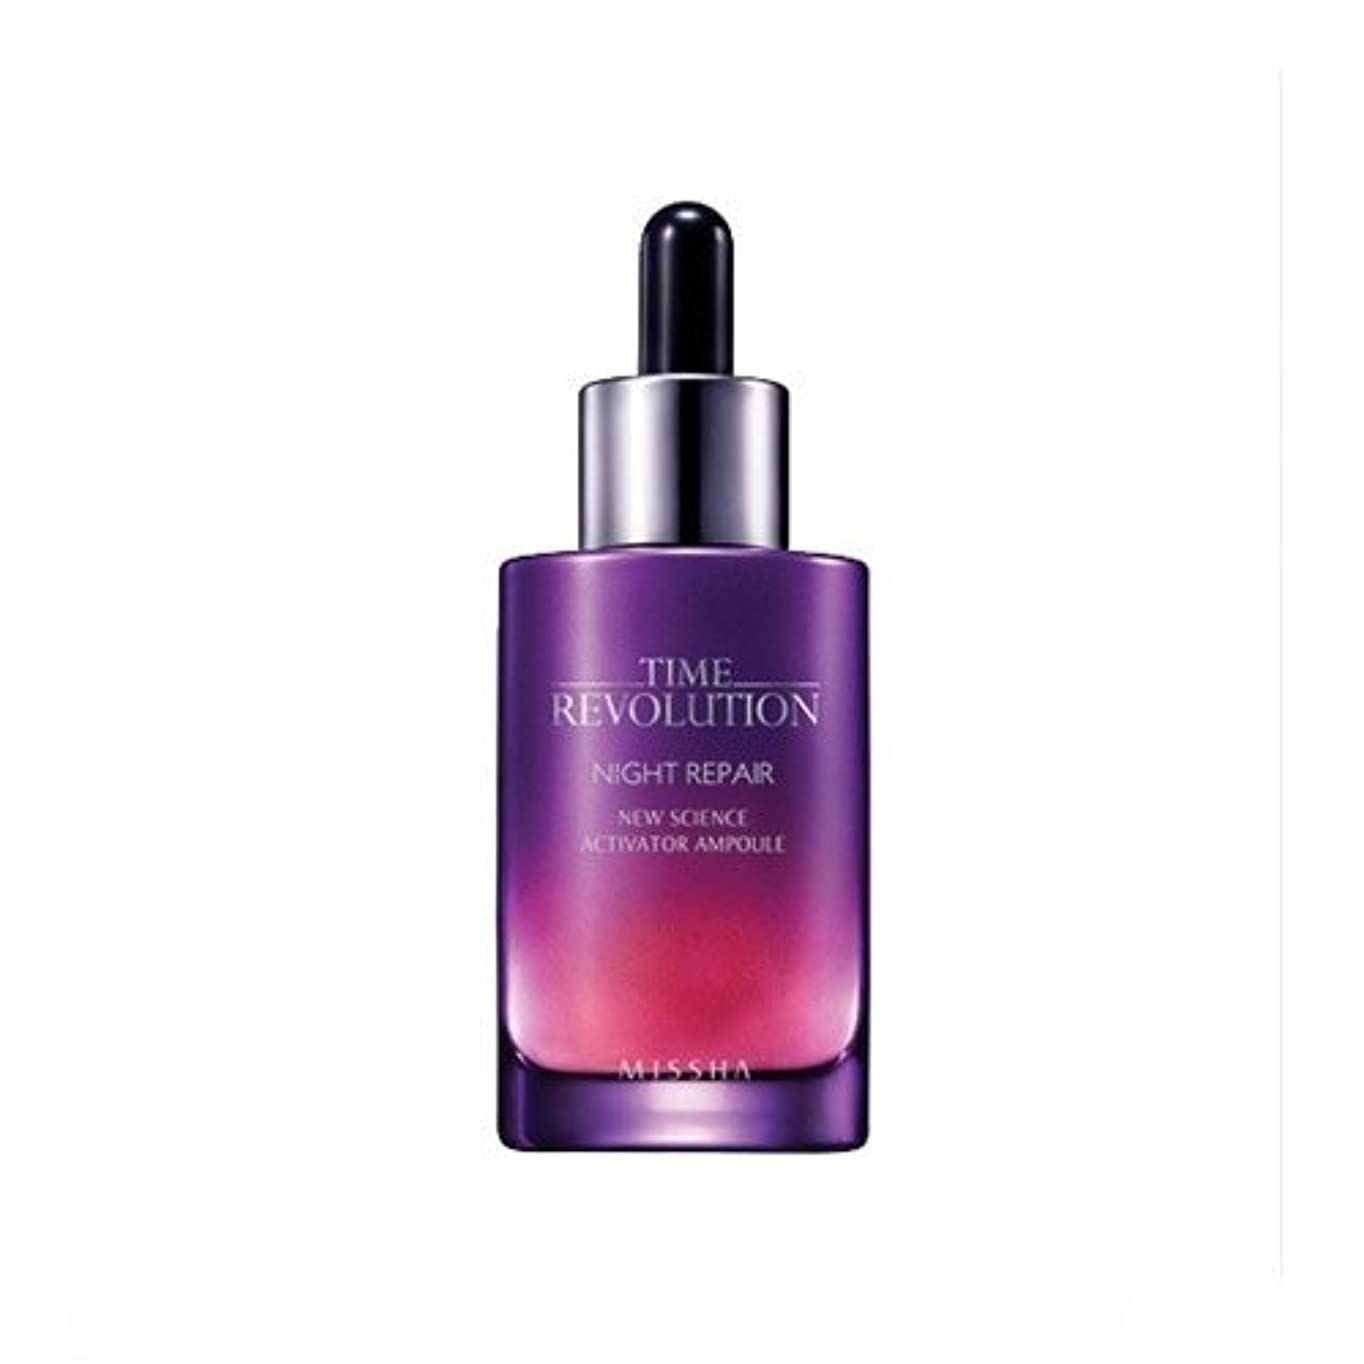 ずんぐりしたブランク彼女自身Missha Time Revolution Night Repair New Science Activator Ampoule 1.7oz MS04-Ampoule [並行輸入品]